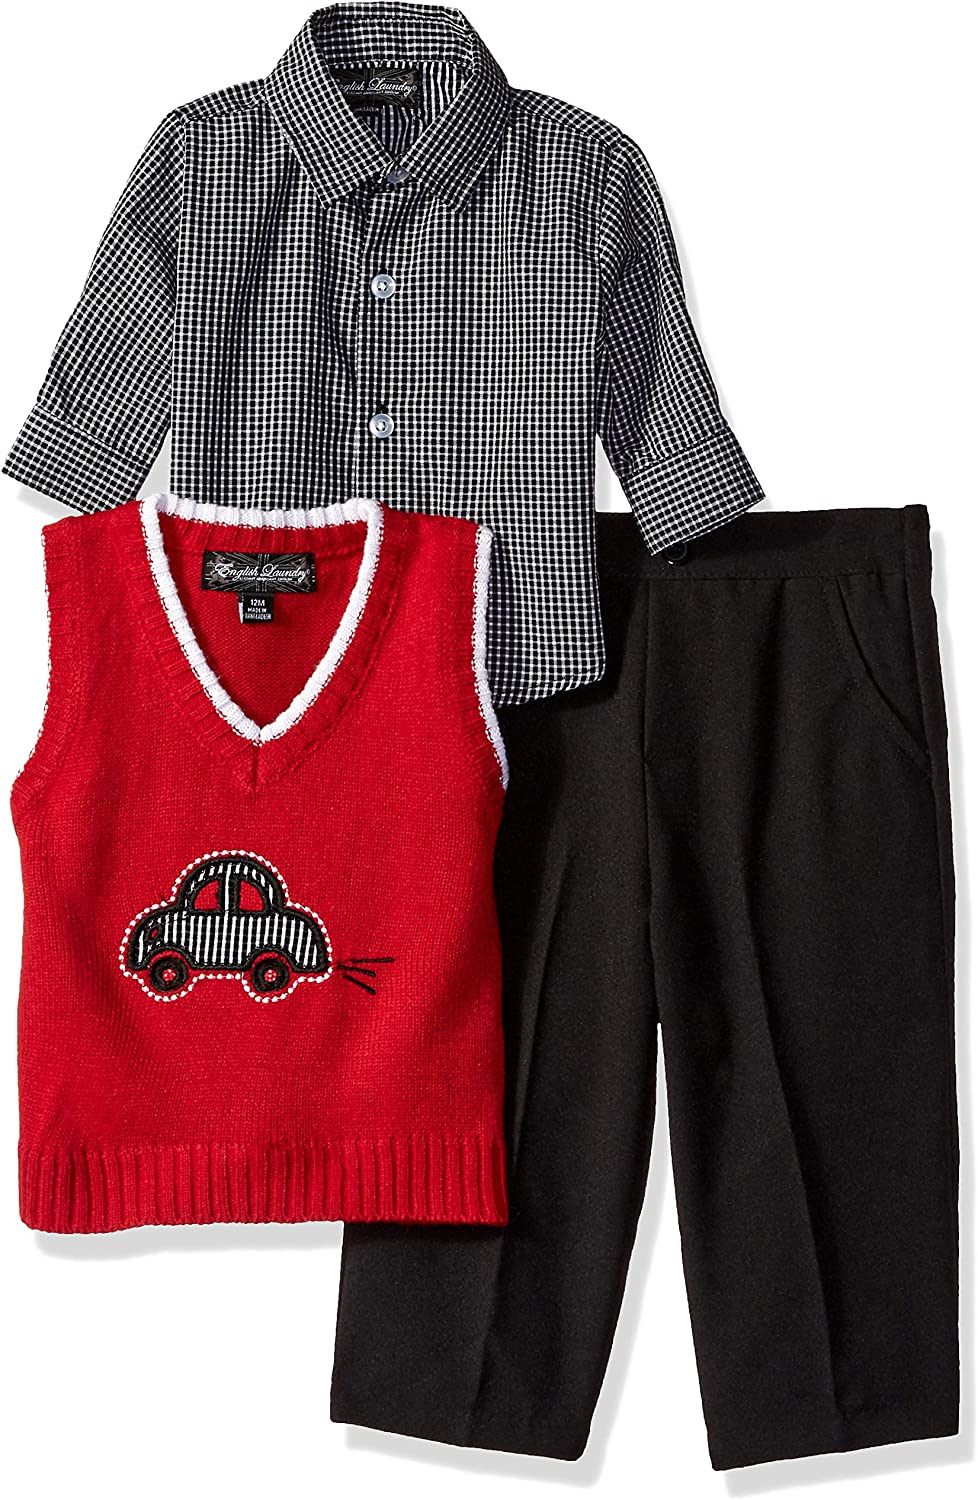 English Laundry Baby Boys 3 Piece Sweater Vest, Woven Sport Shirt and Pant